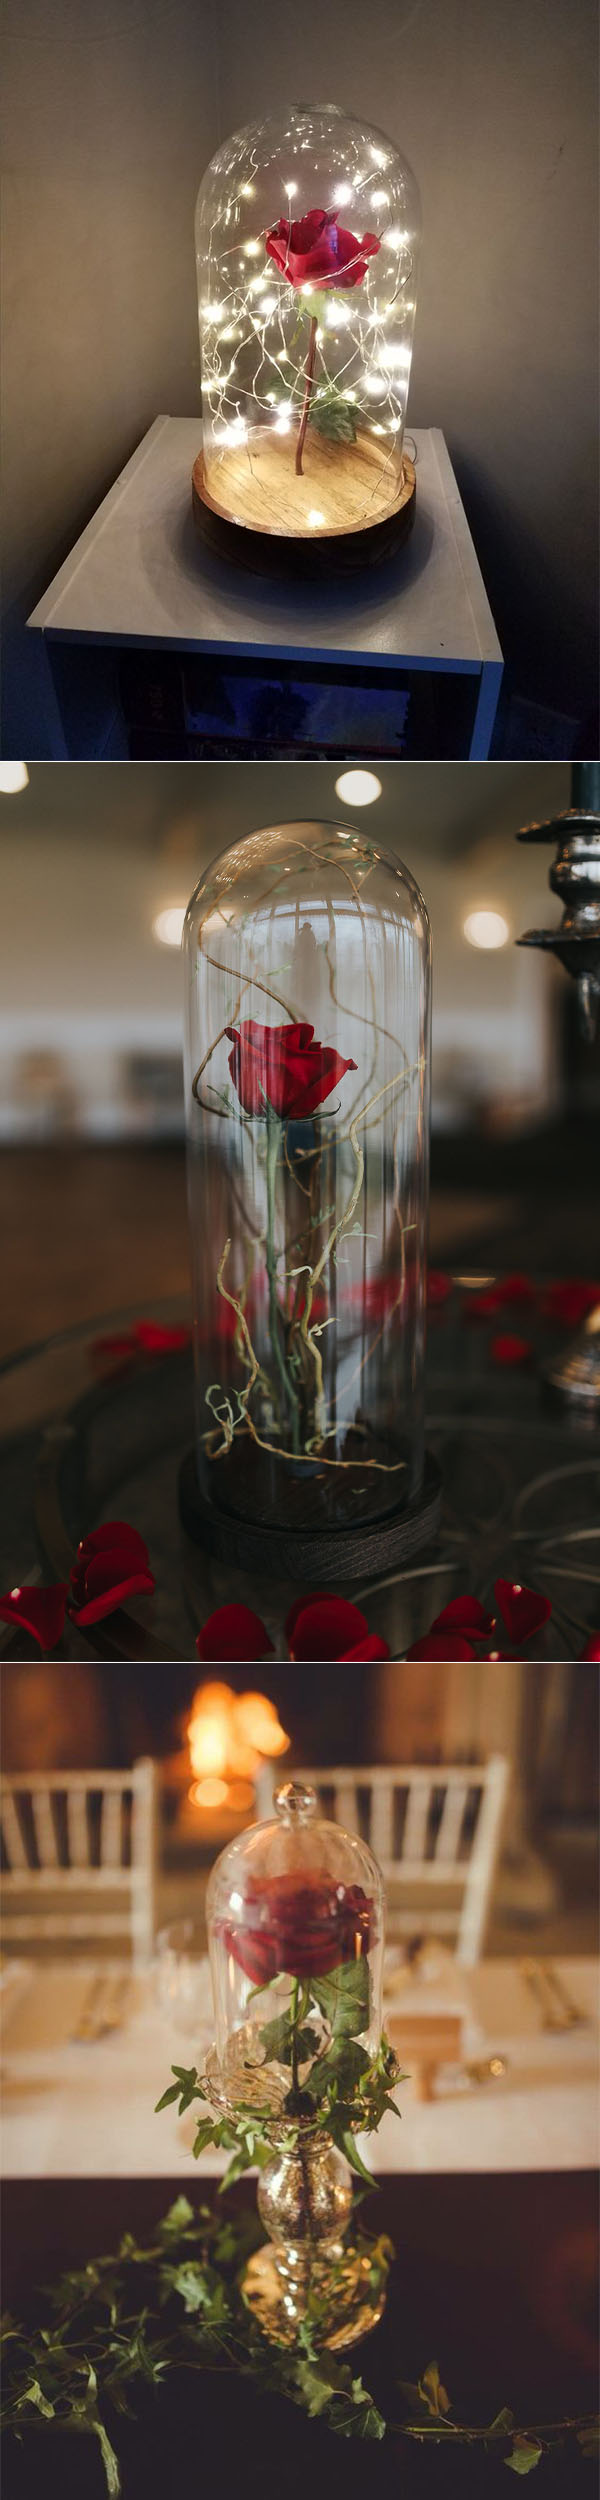 disney theme beauty and the beast rose wedding centerpieces